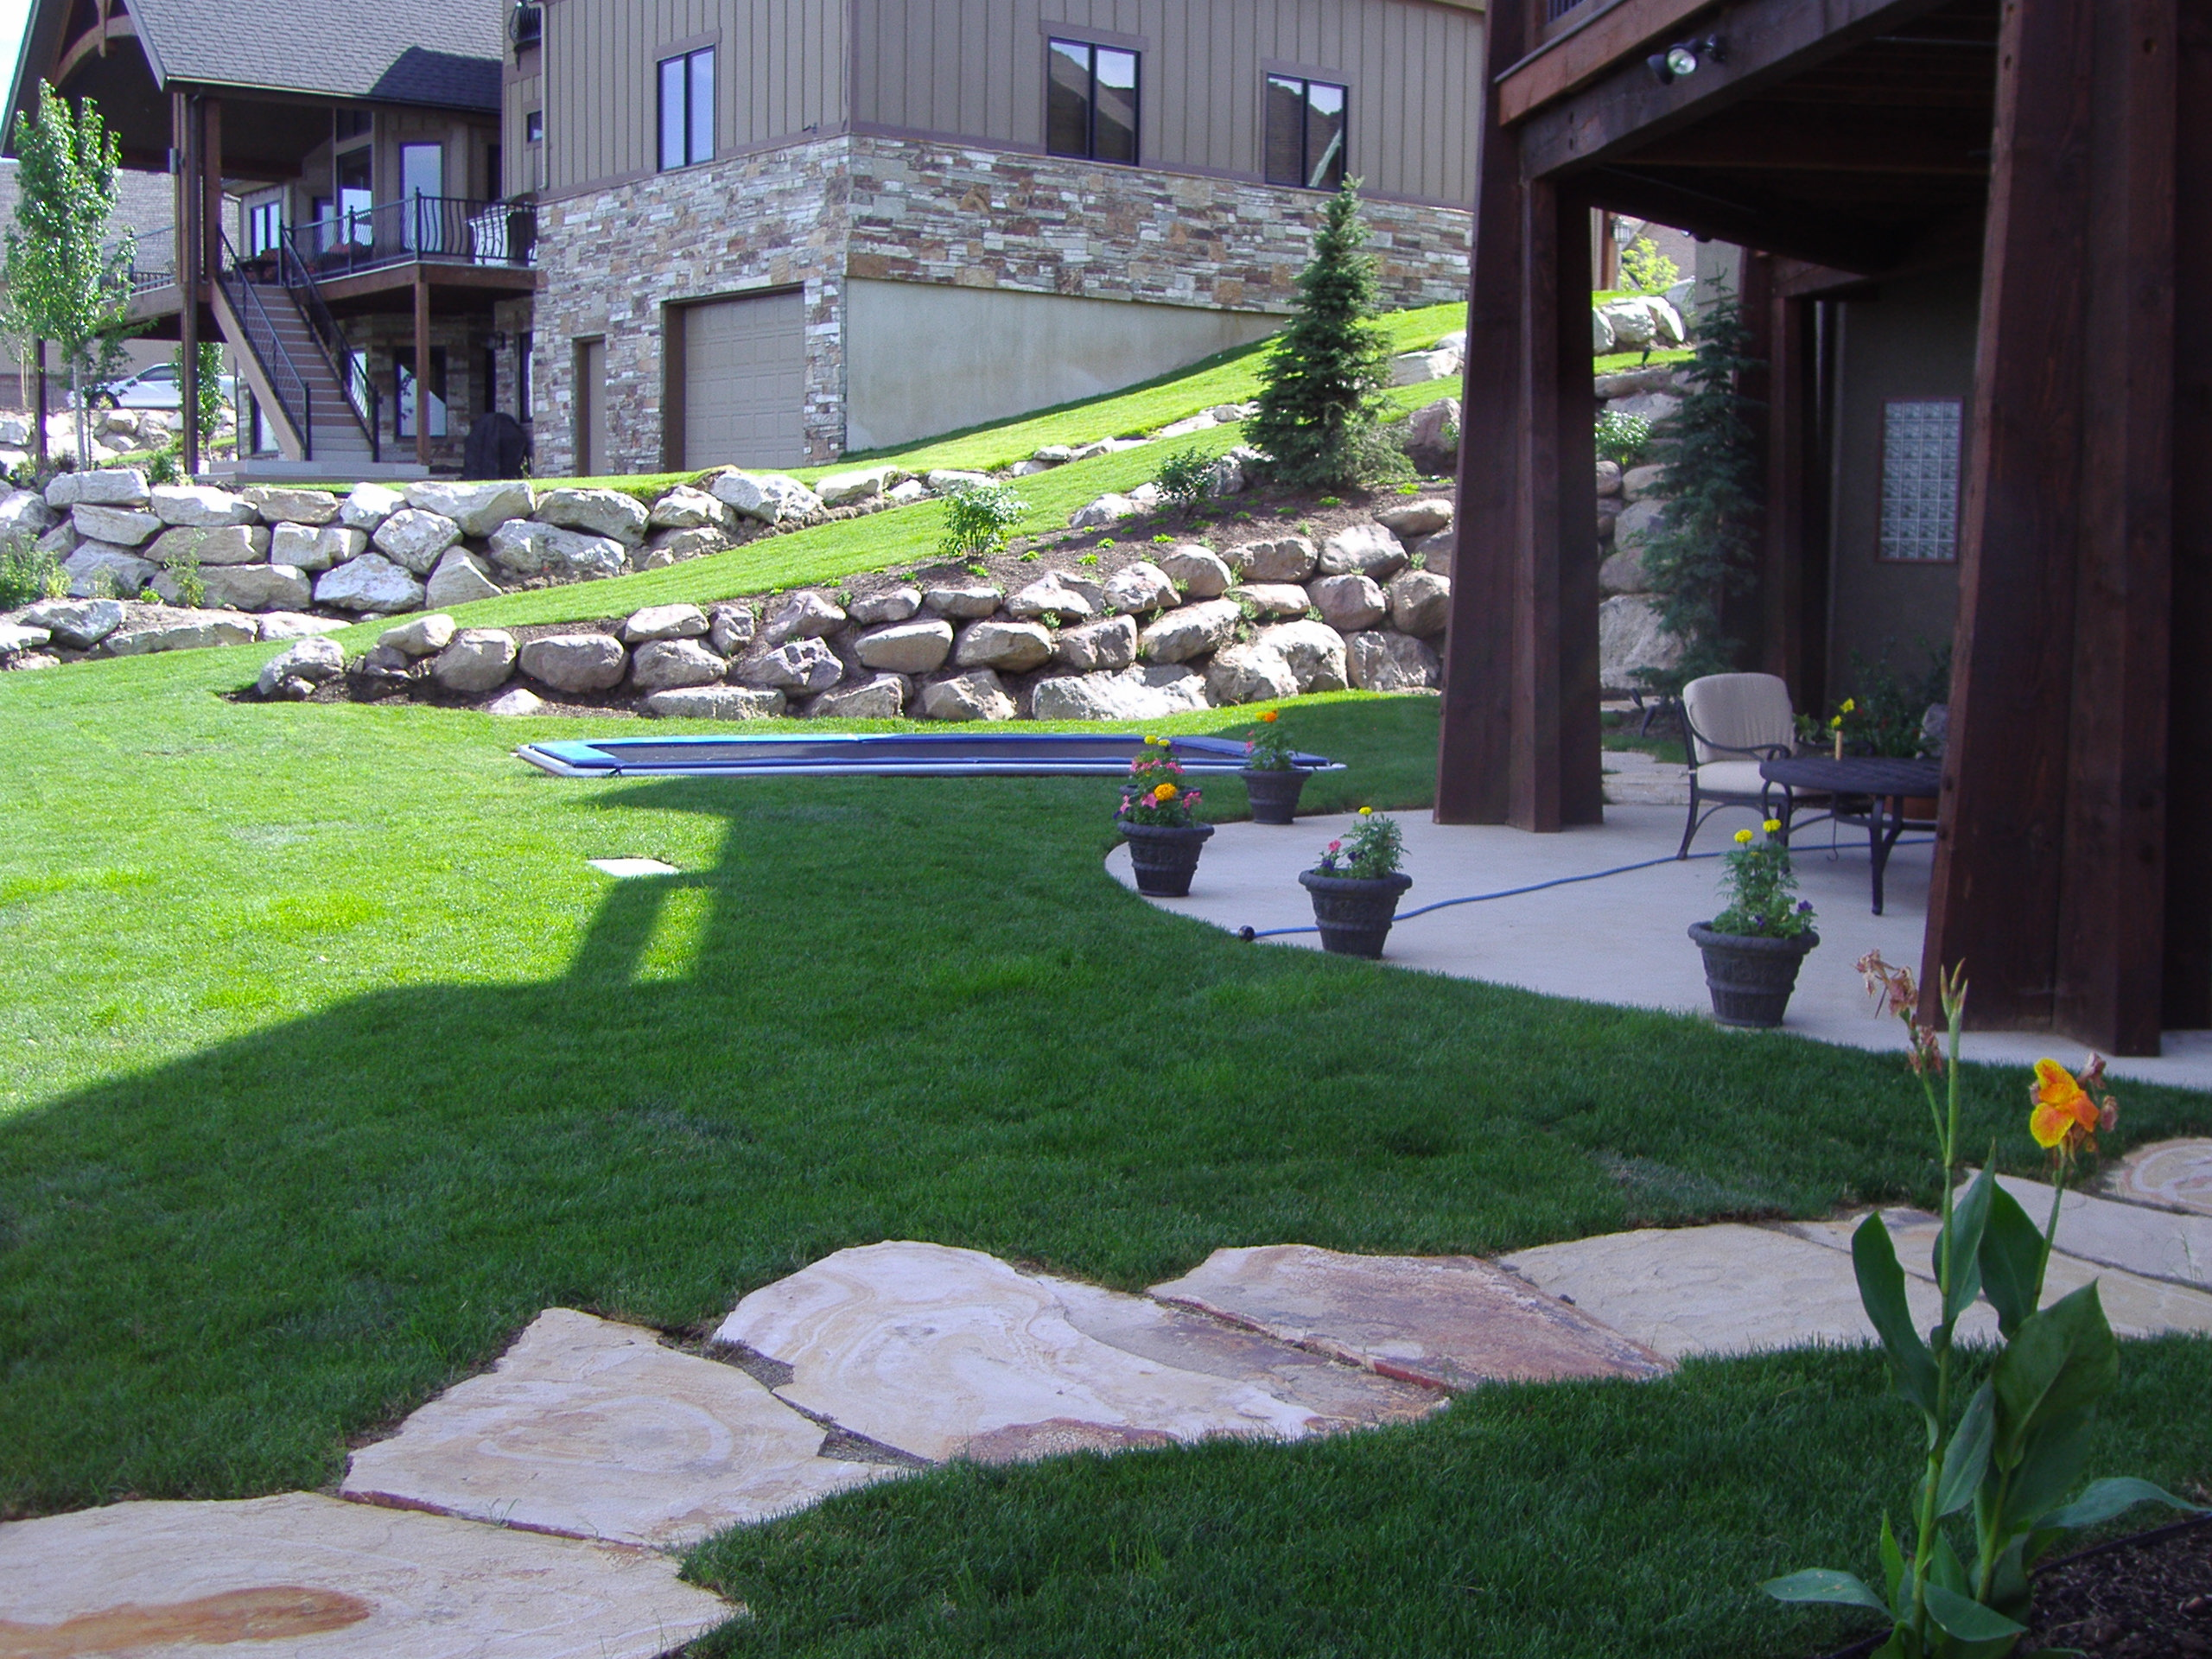 Ideas 4 you pools and landscaping ideas midwest sports - Practical ideas to decorate front yards in the city ...